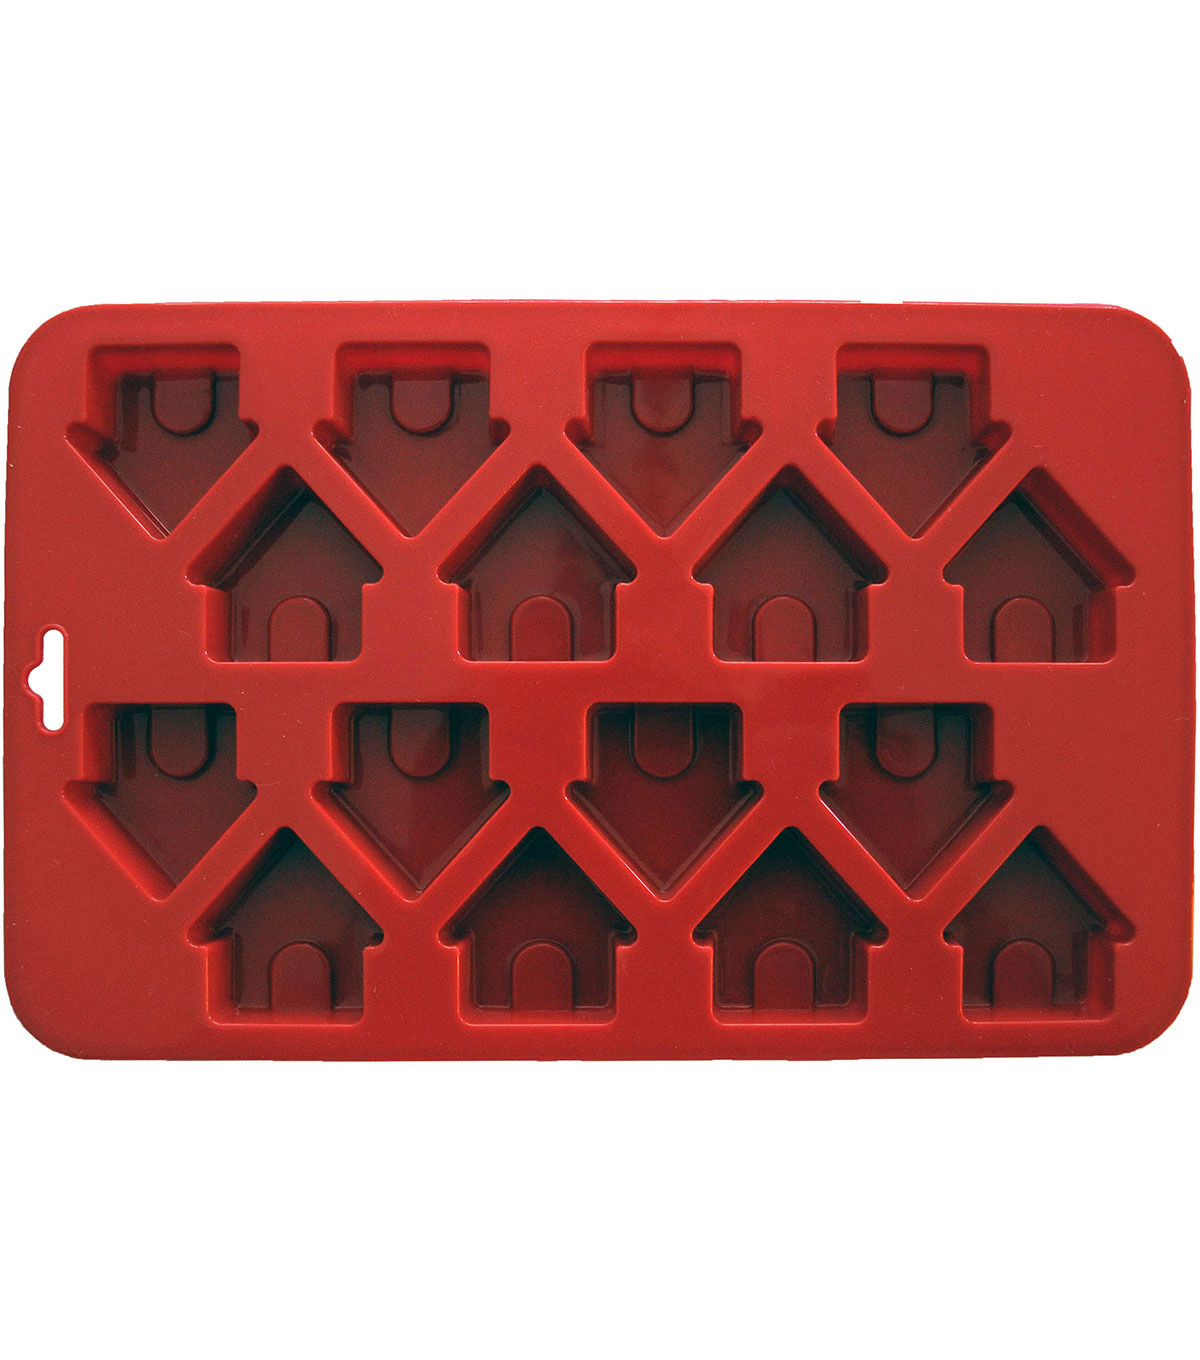 K9 Cakery- Mini Dog Houses Silicone Cake Pan-16 Cavity